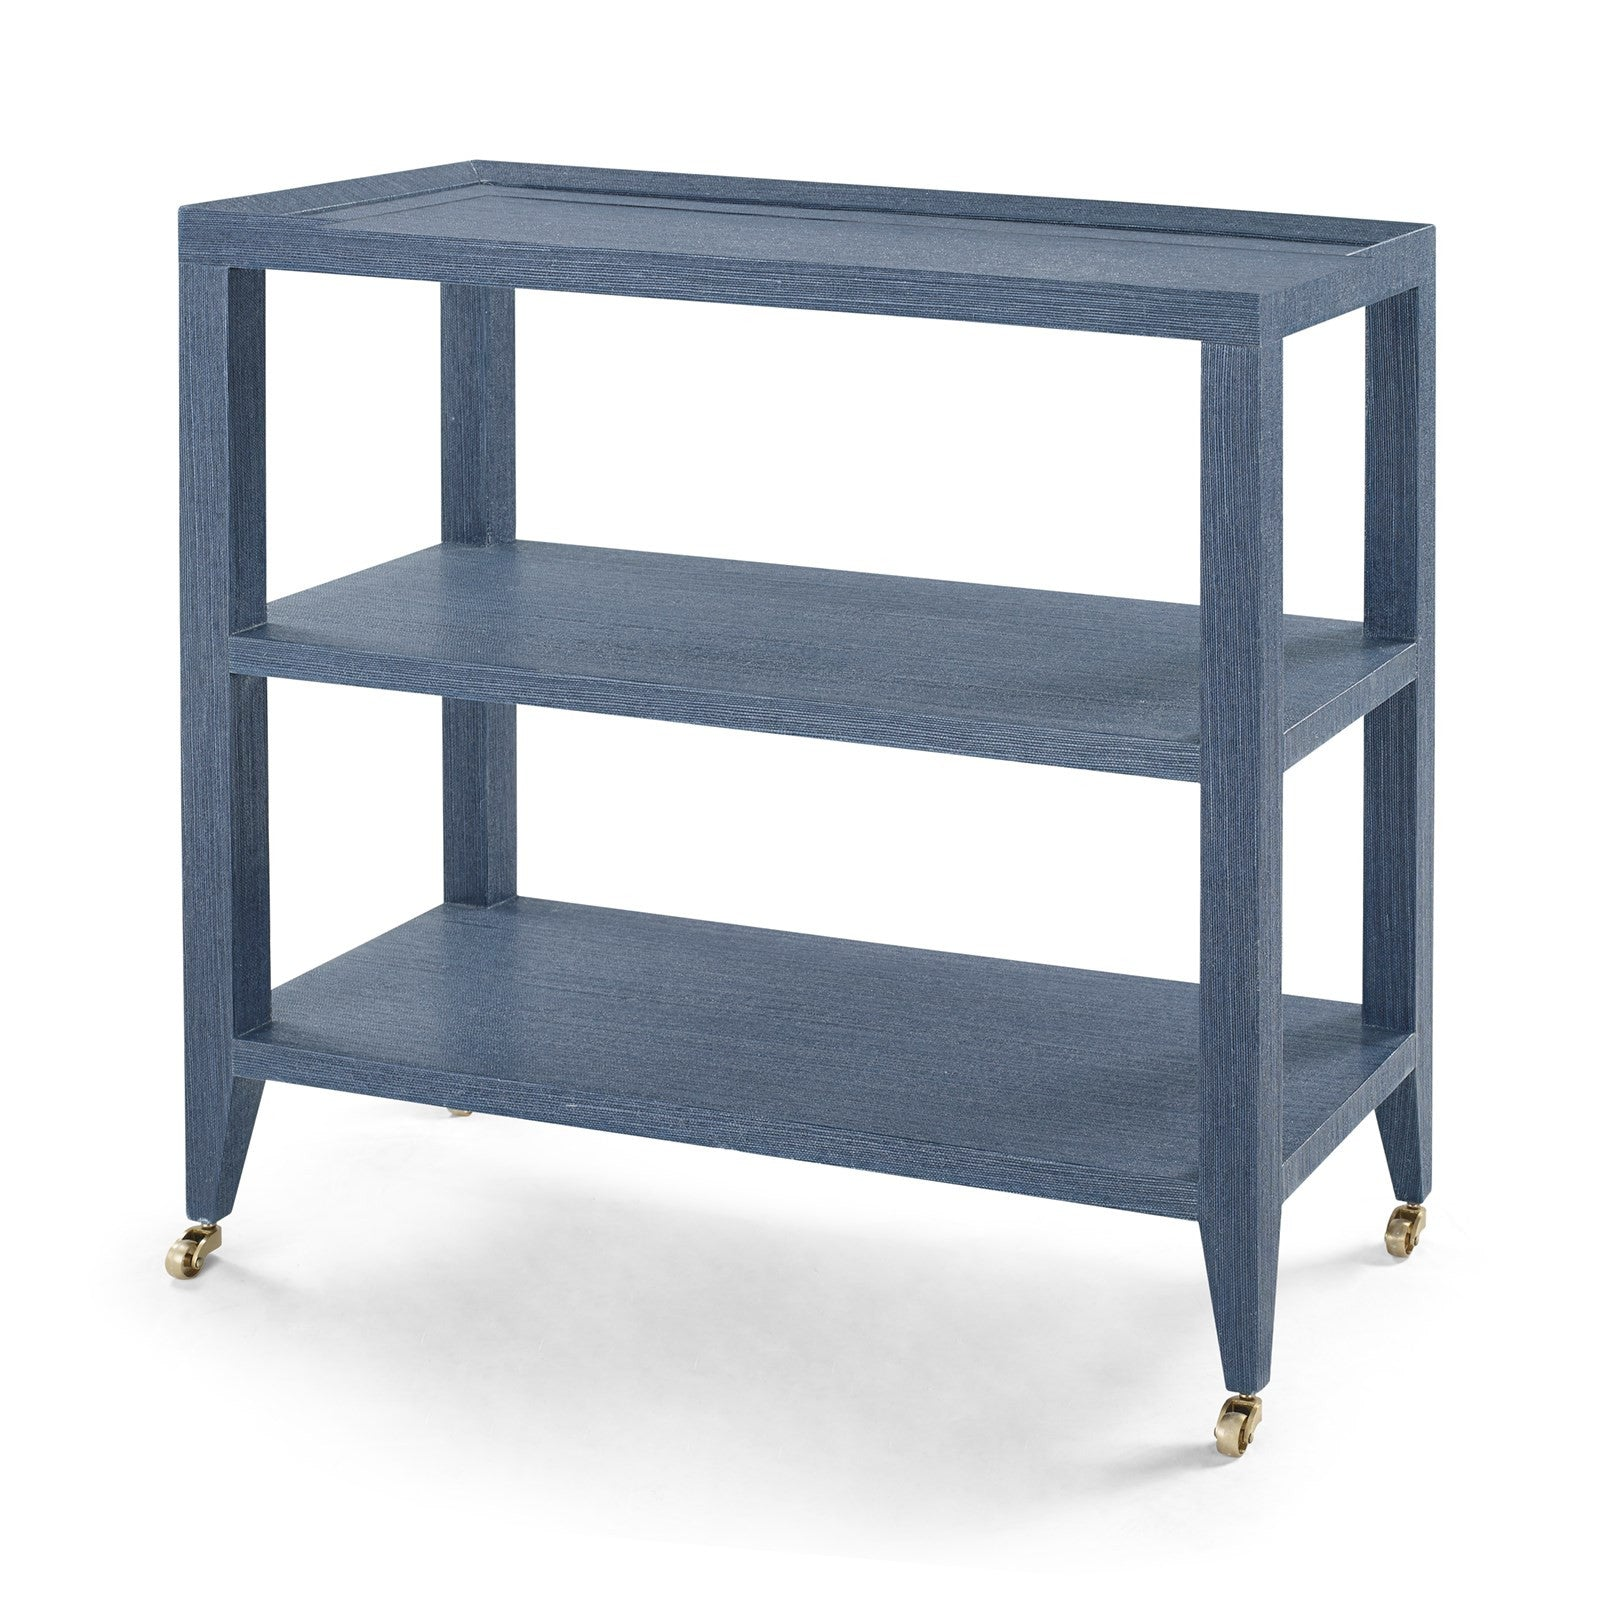 Isadora Console Table, Navy Blue